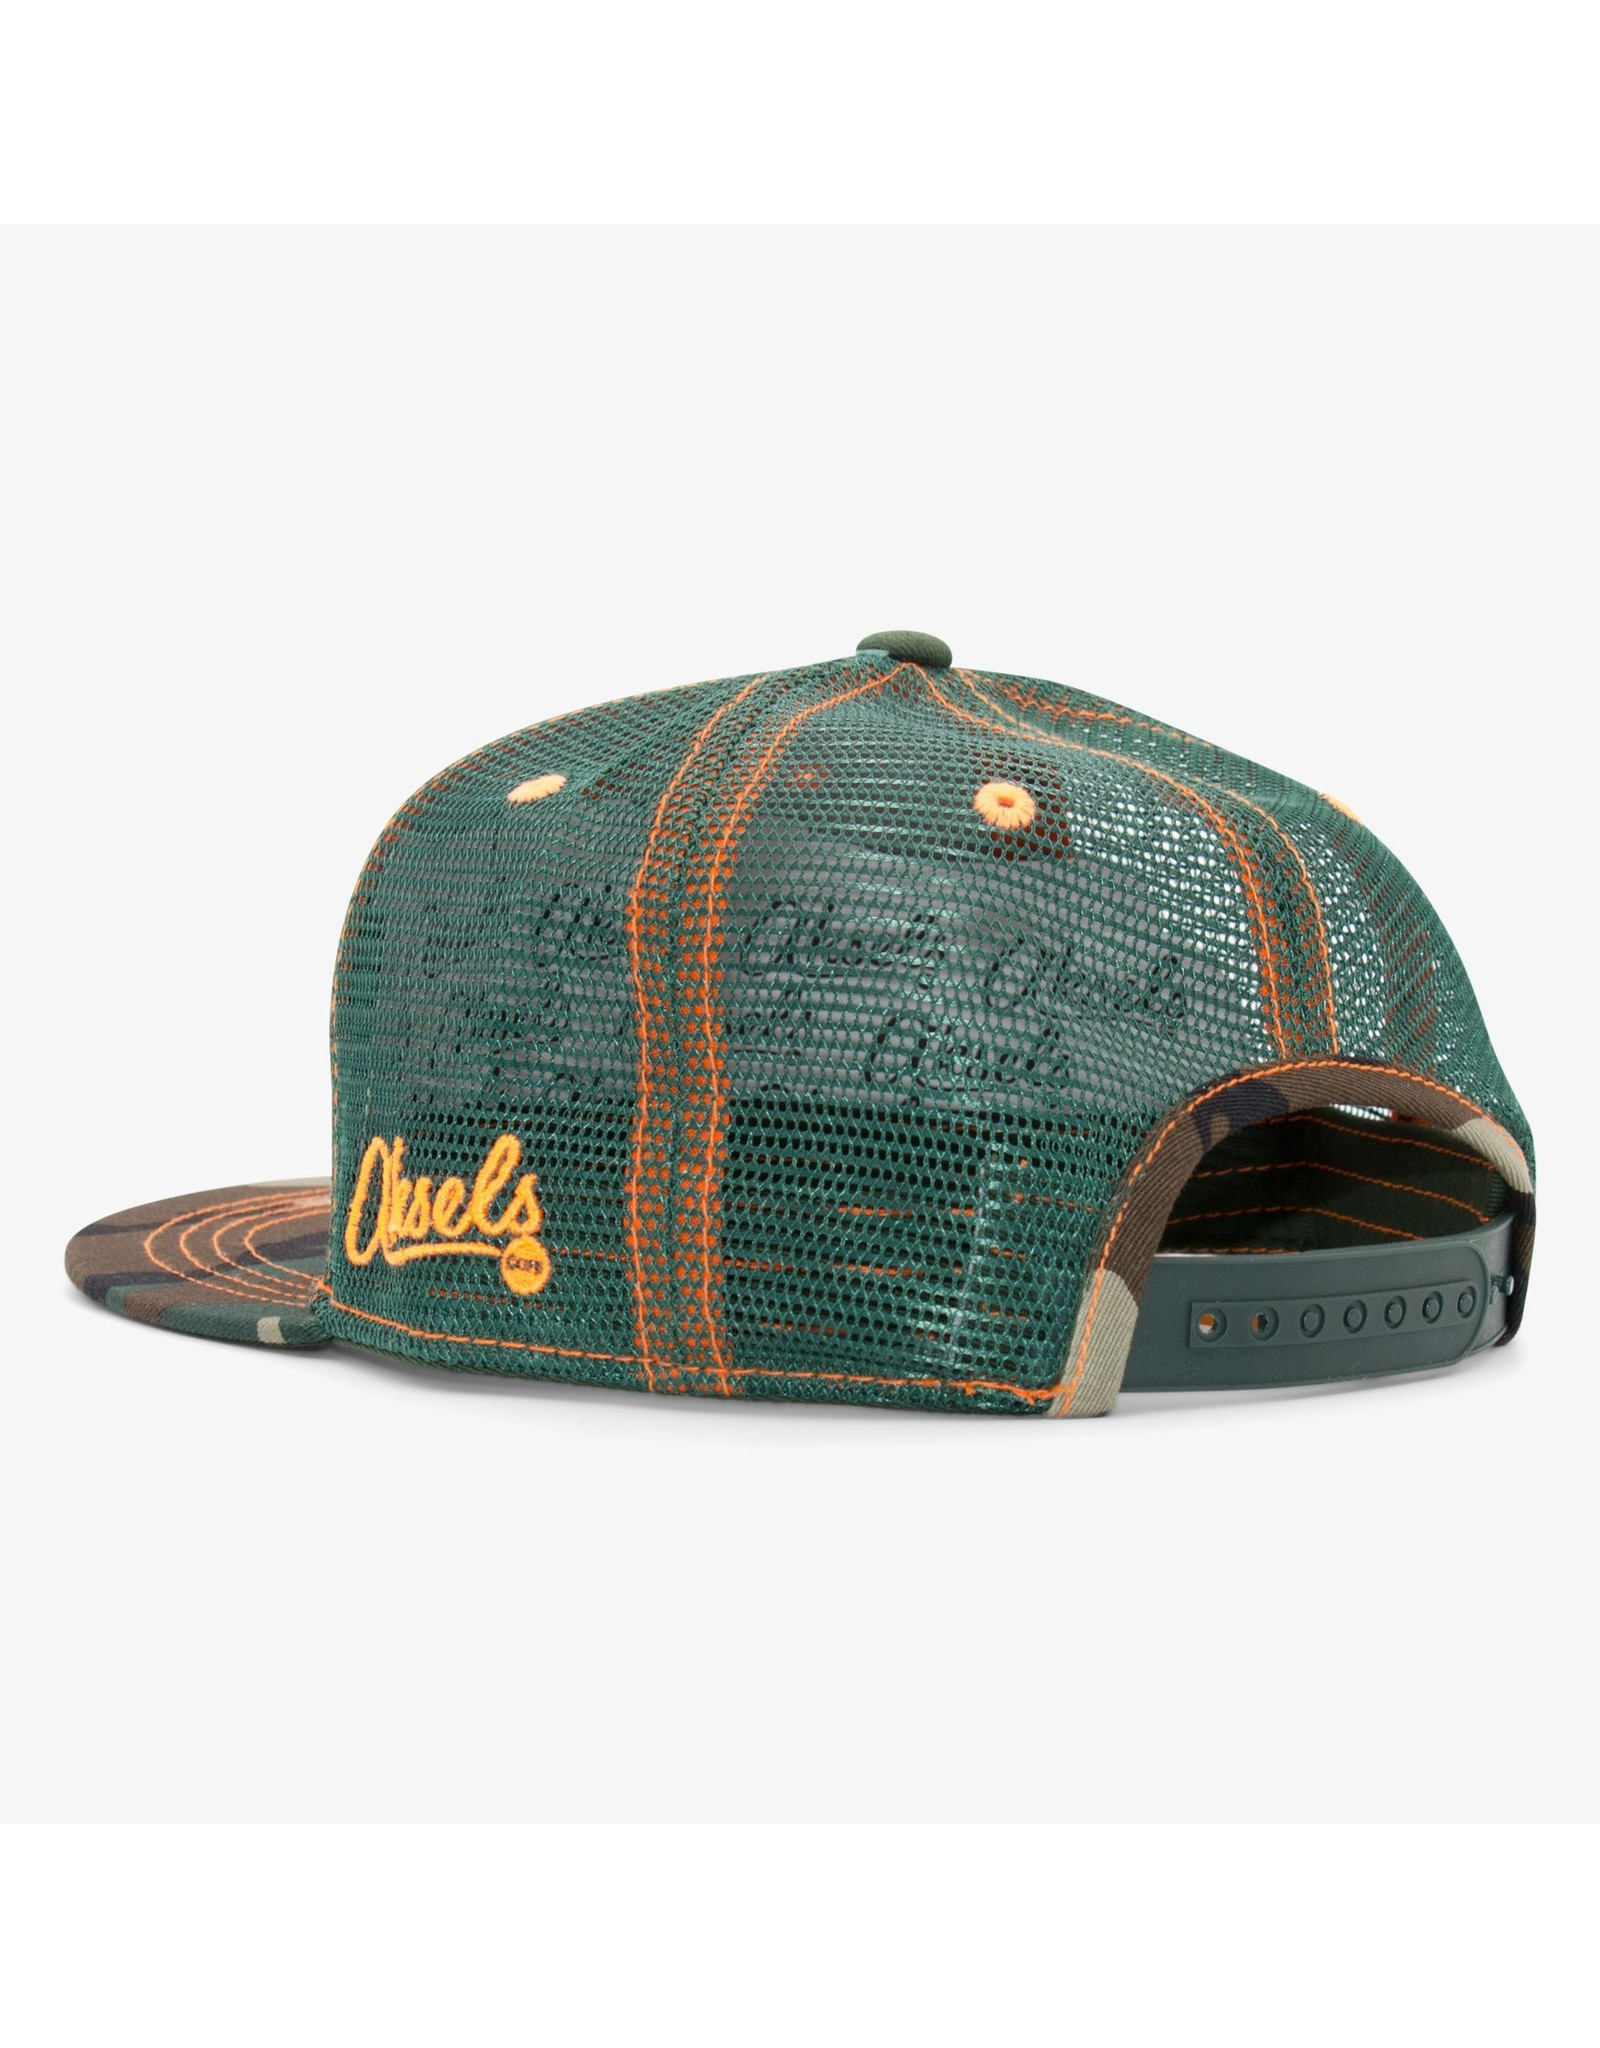 Aksels Aksels Colorado Big C Trucker Hat - Camo